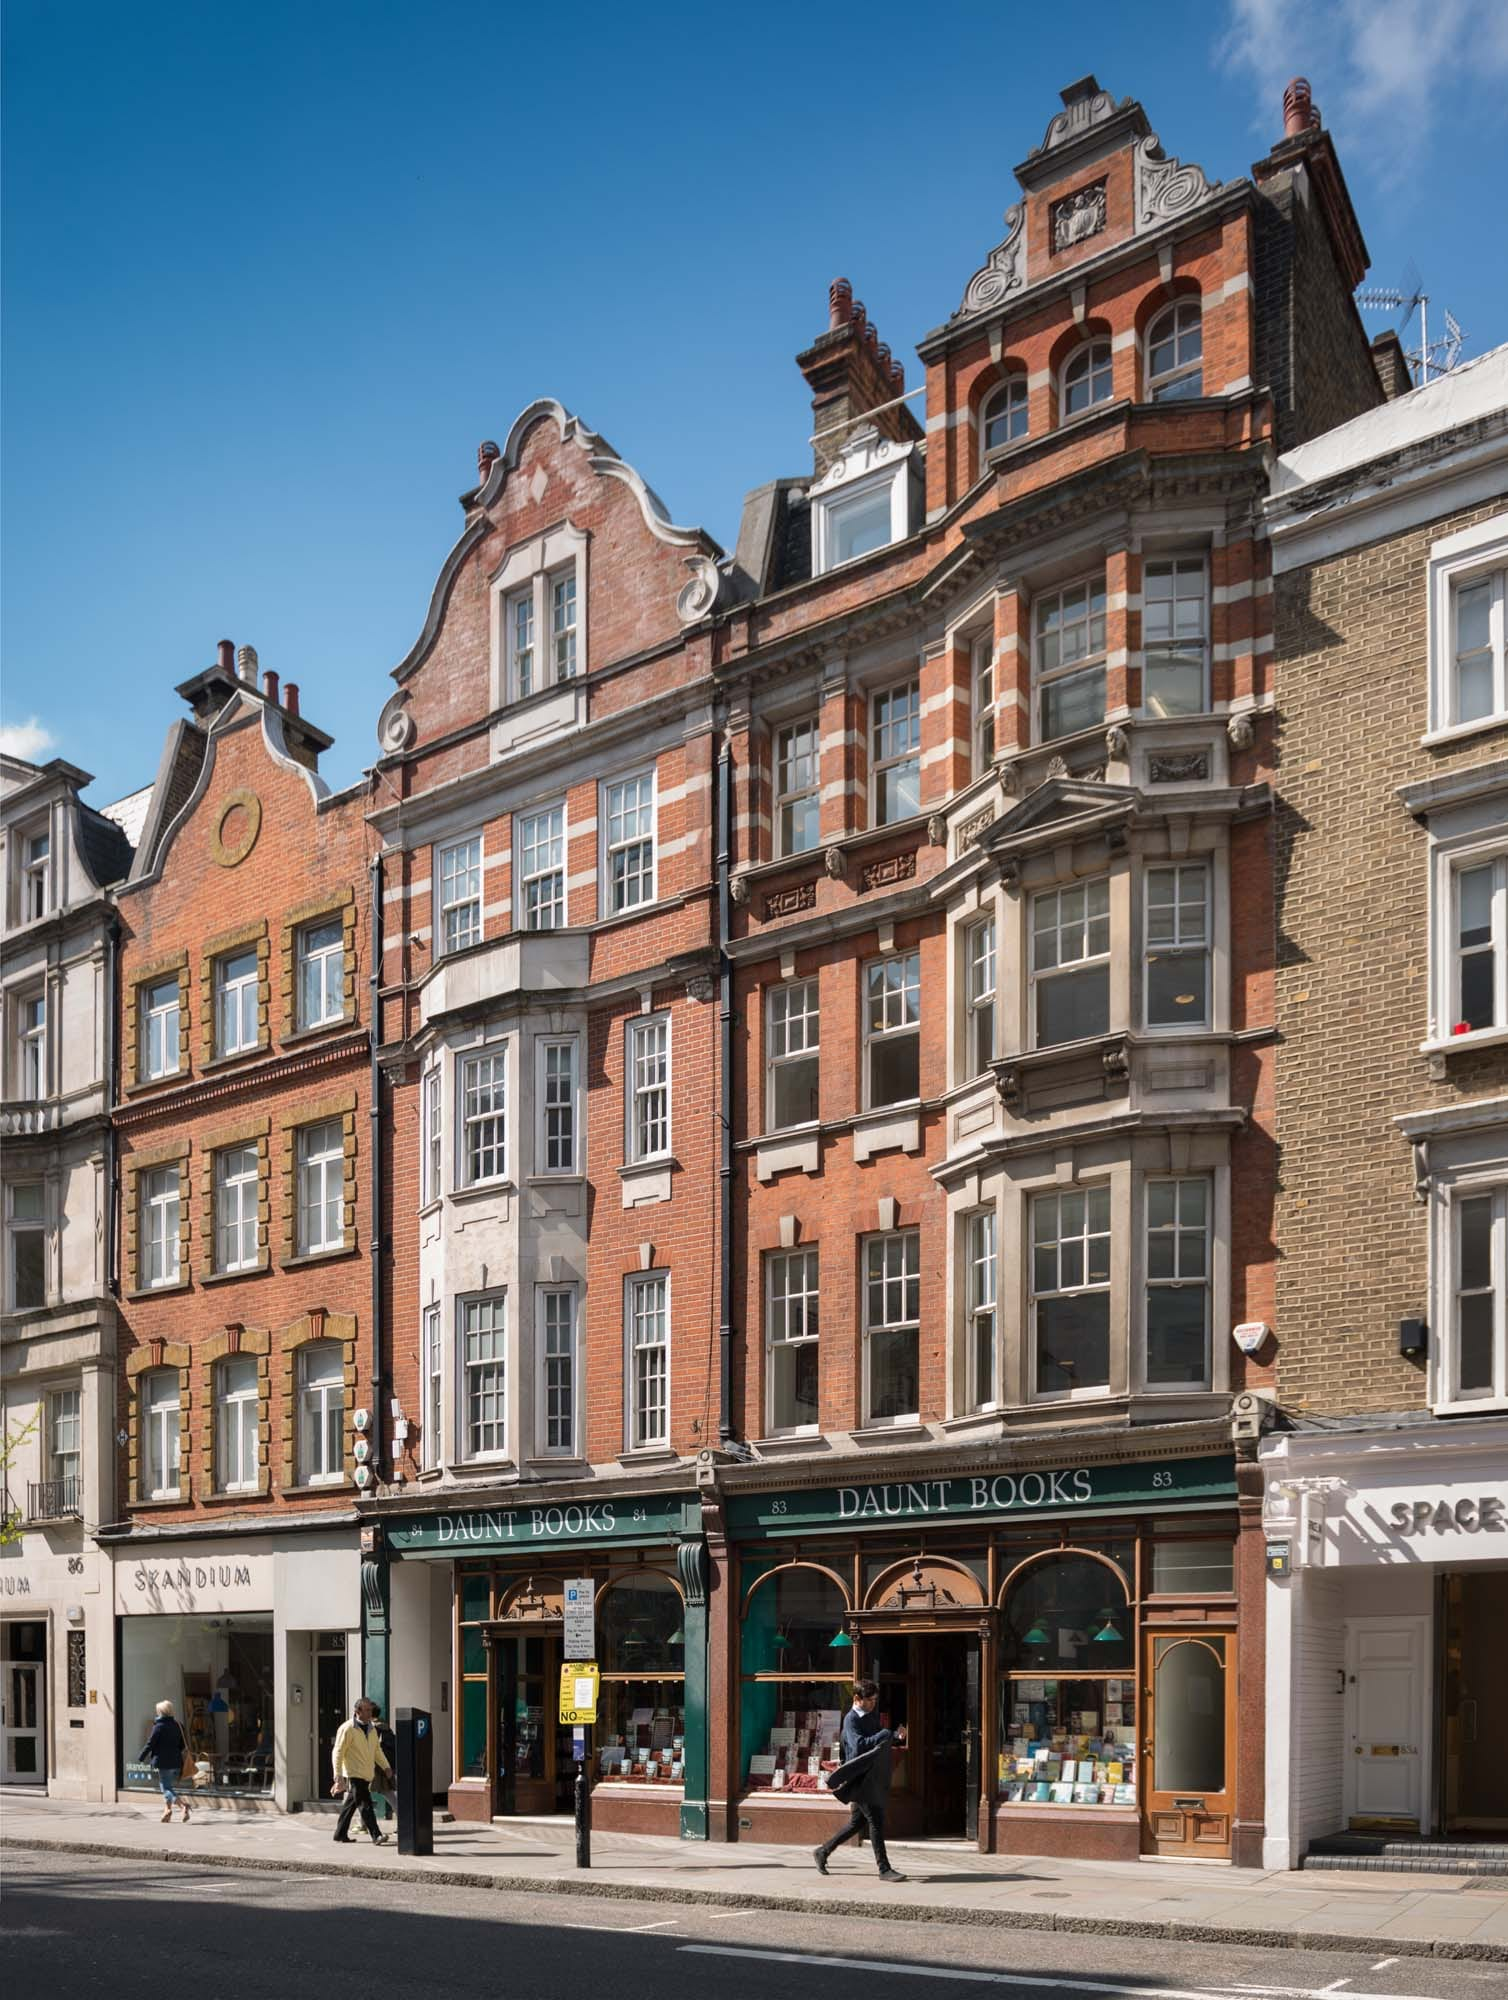 Daunt's Bookshop, Marylebone High Street. Photographed by Chris Redgrave for the Howard de Walden Estate and the Survey of London Historic England